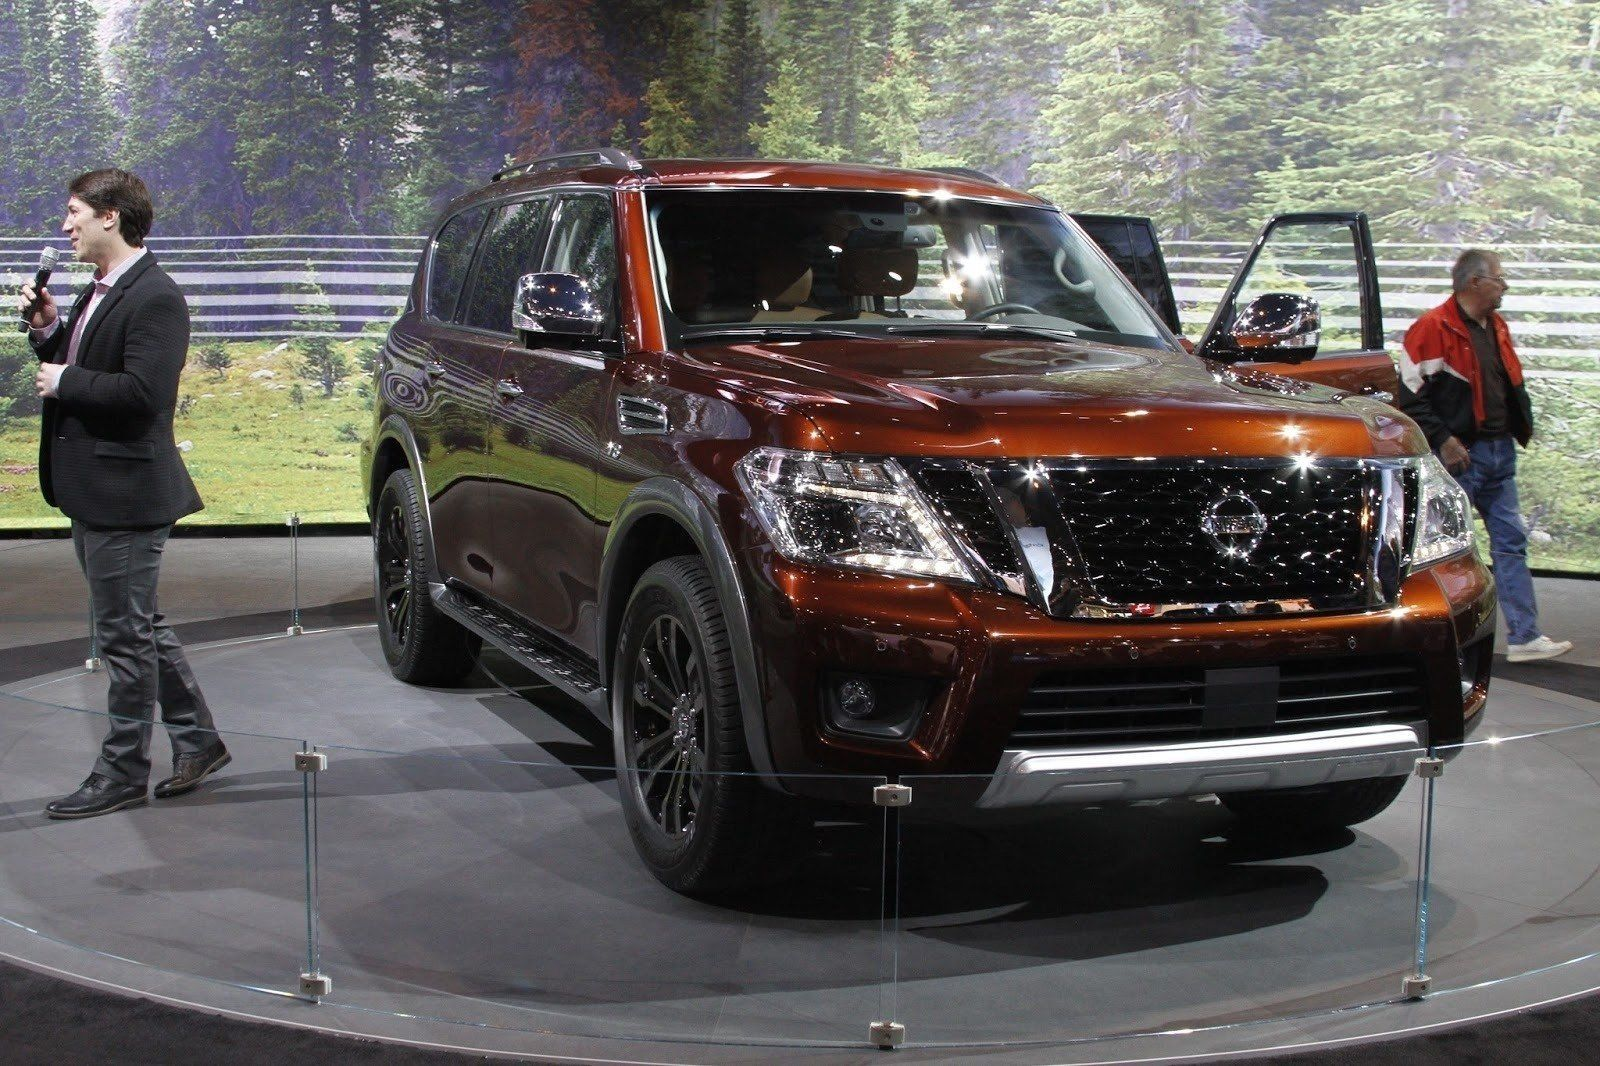 New 2020 Nissan Patrol Picture Release Date And Review Car Price 2019 Nissan Patrol Nissan Nissan Armada